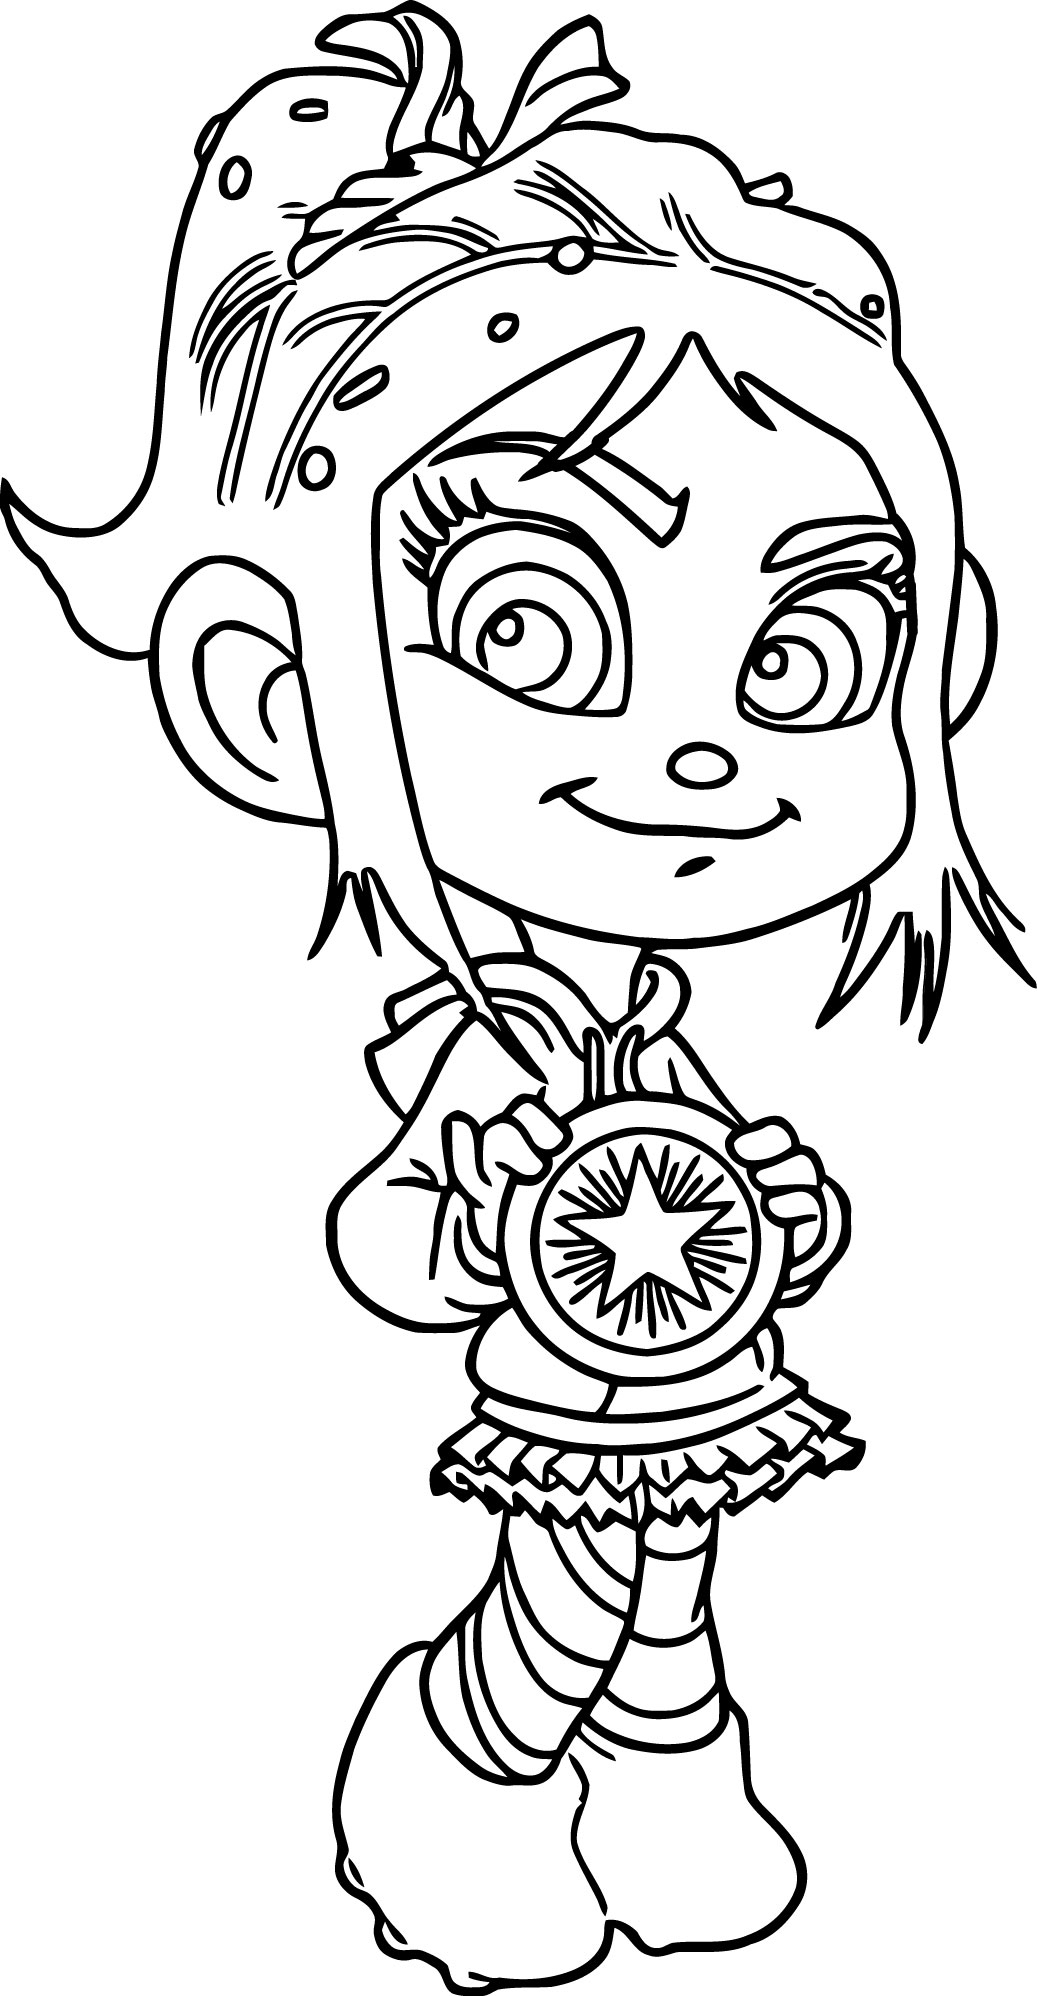 Wreck It Ralph Vanellope Coloring Pages And Various Wreck It Ralph Vanellope Coloring Pages